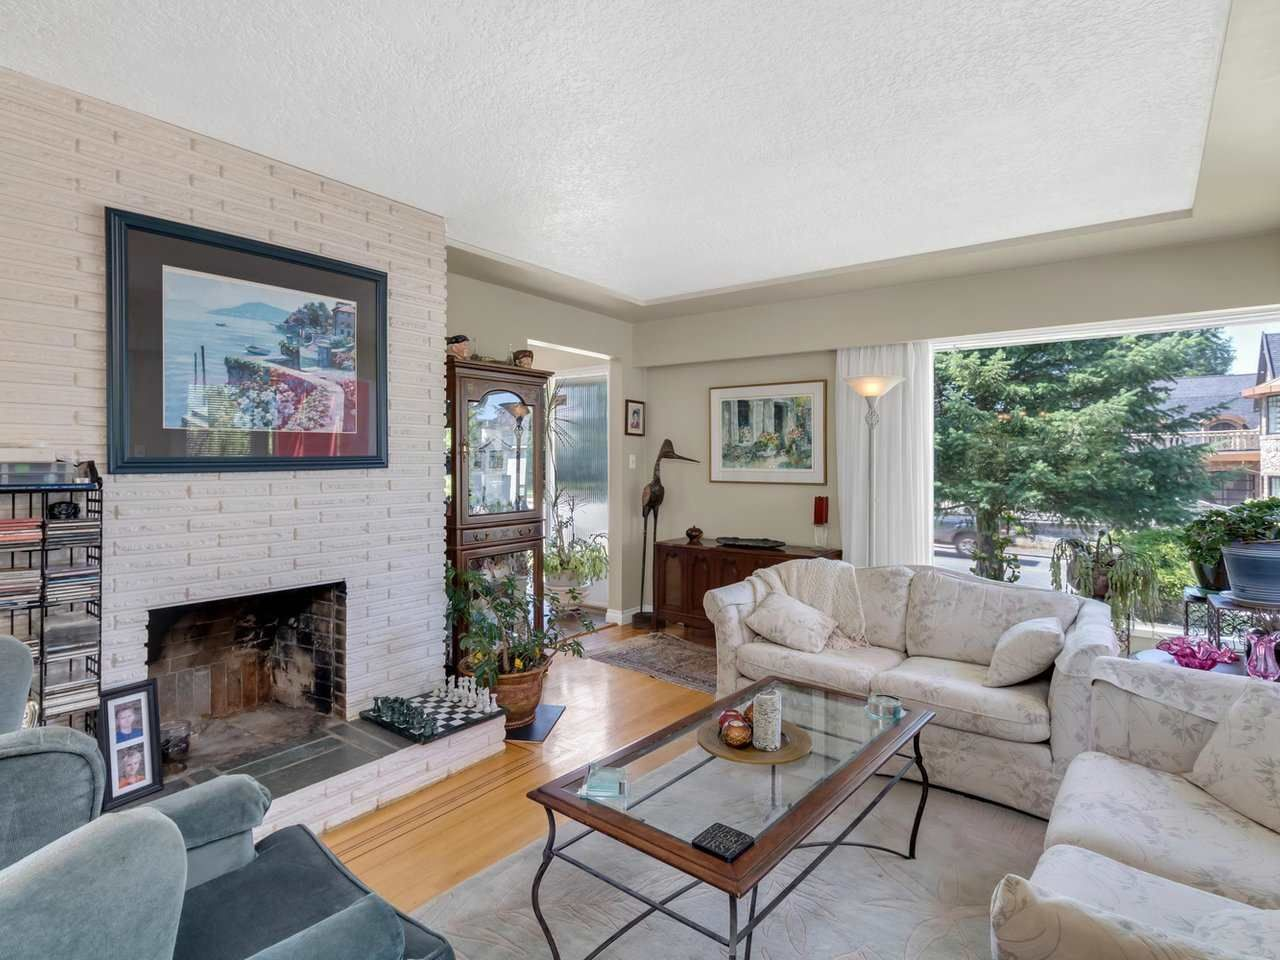 Photo 2: Photos: 943 GATENSBURY Street in Coquitlam: Harbour Chines House for sale : MLS®# R2499202